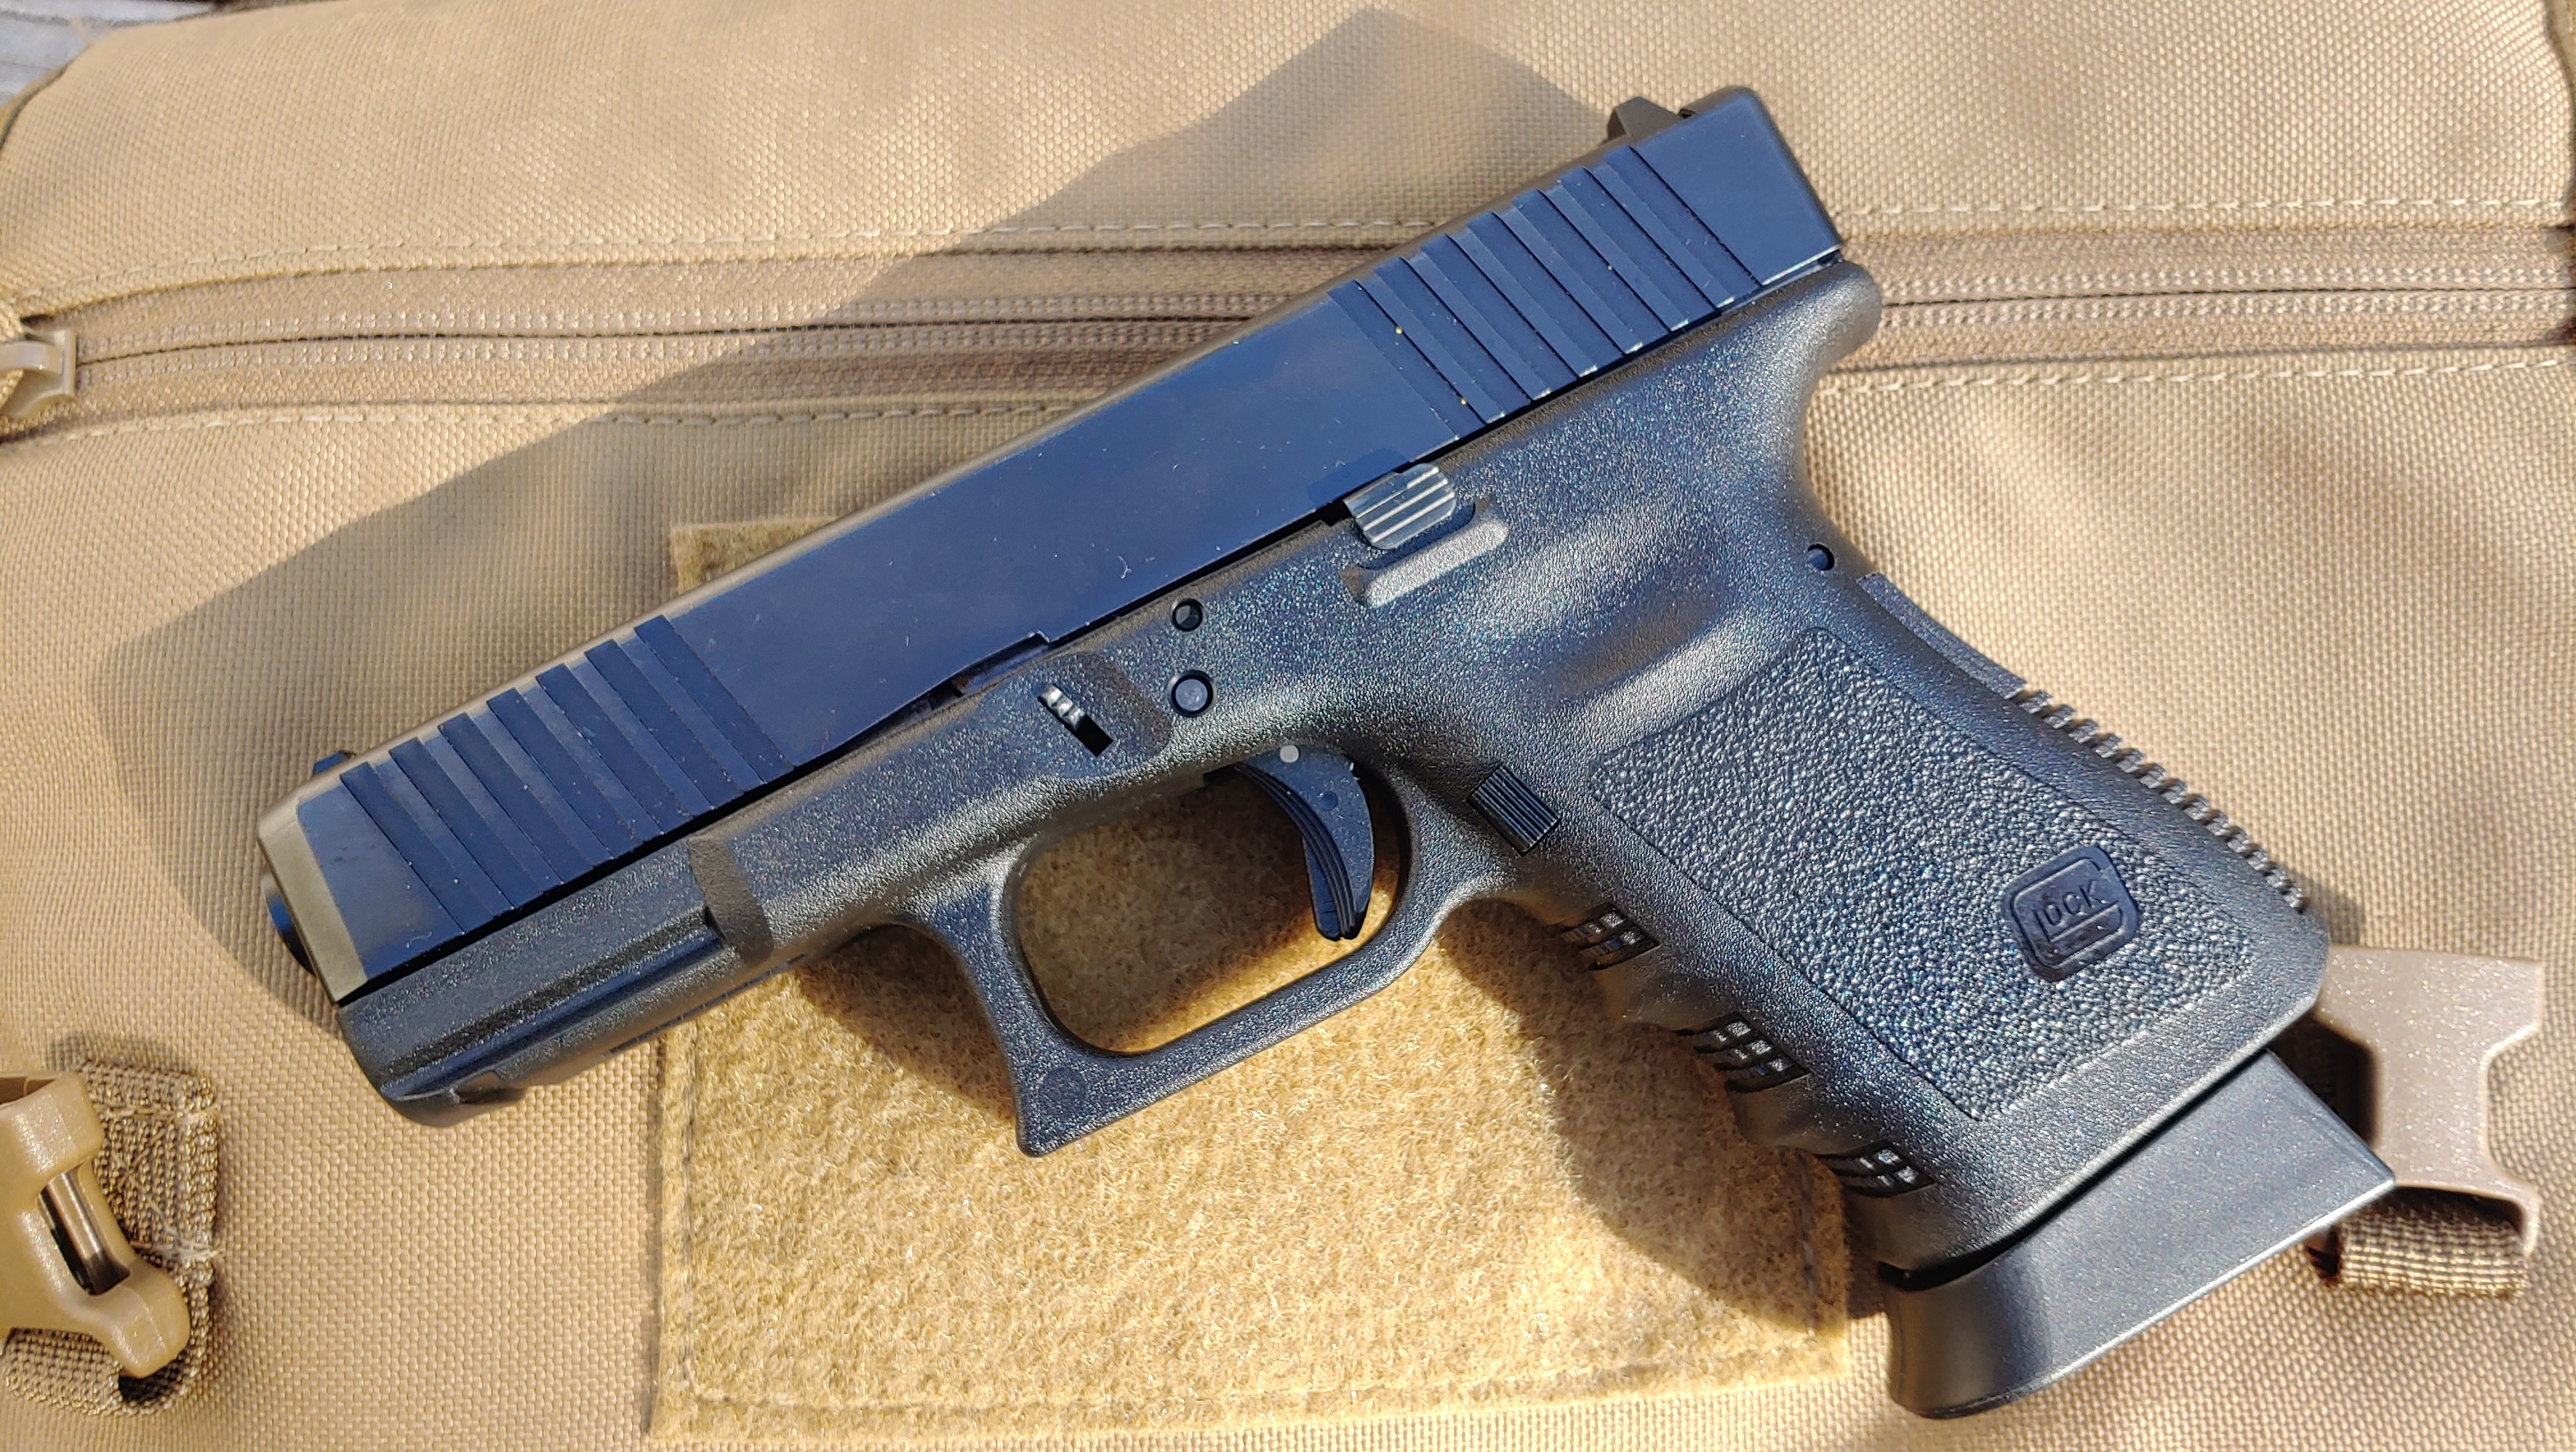 Glock, Glock 19, upgrades, CrossBreed Holsters, G19, handguns, Glock pistols, Travis Pike, concealed carry, IWB, IWB holster, holsters, Glock holsters, holster for Glock 19